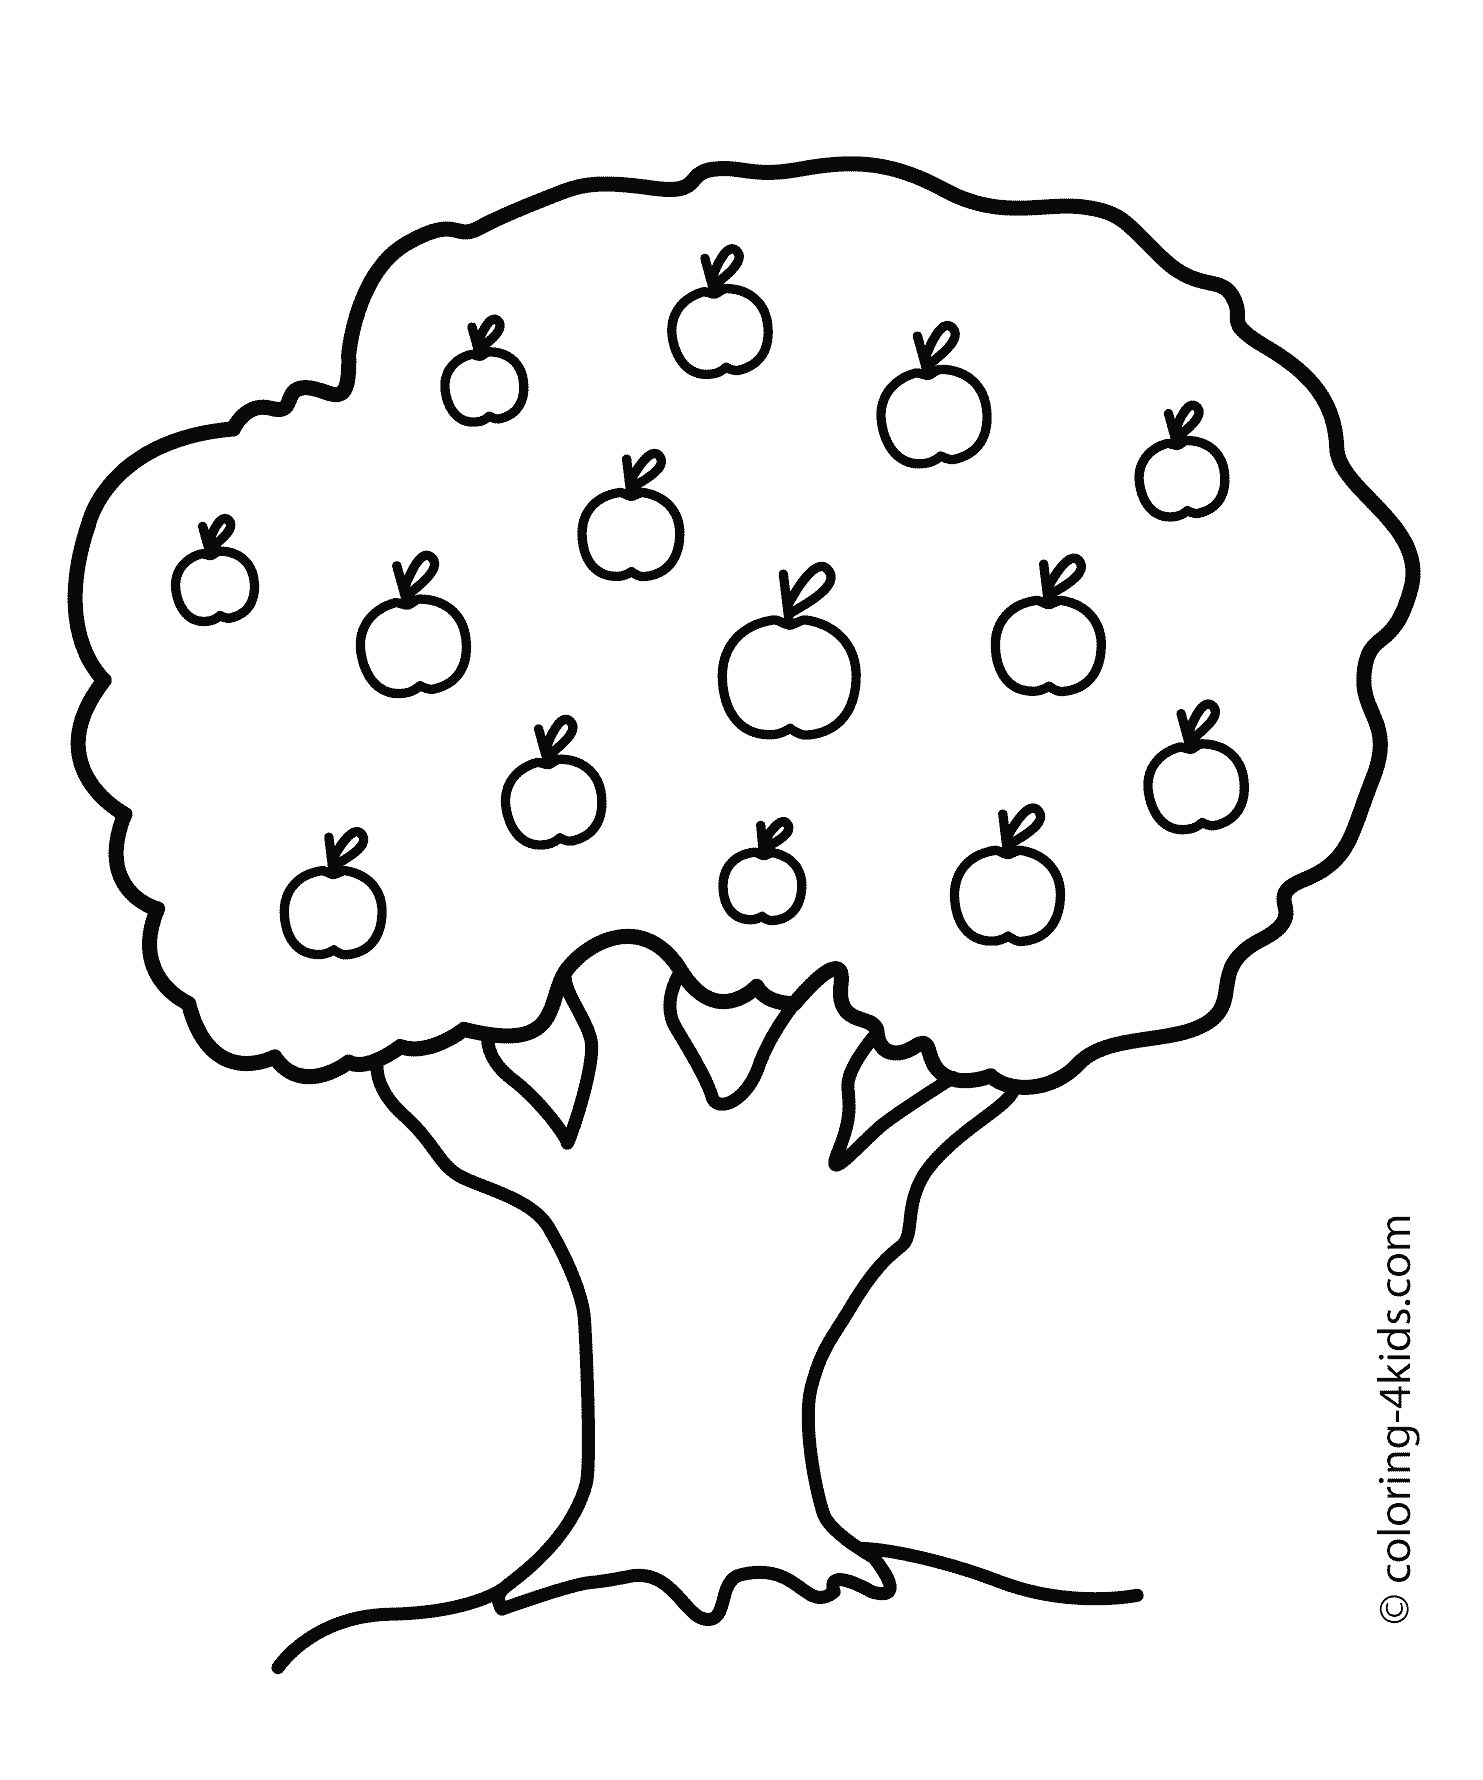 Apple Picture For Colouring Coloring Pages Compromise Tree